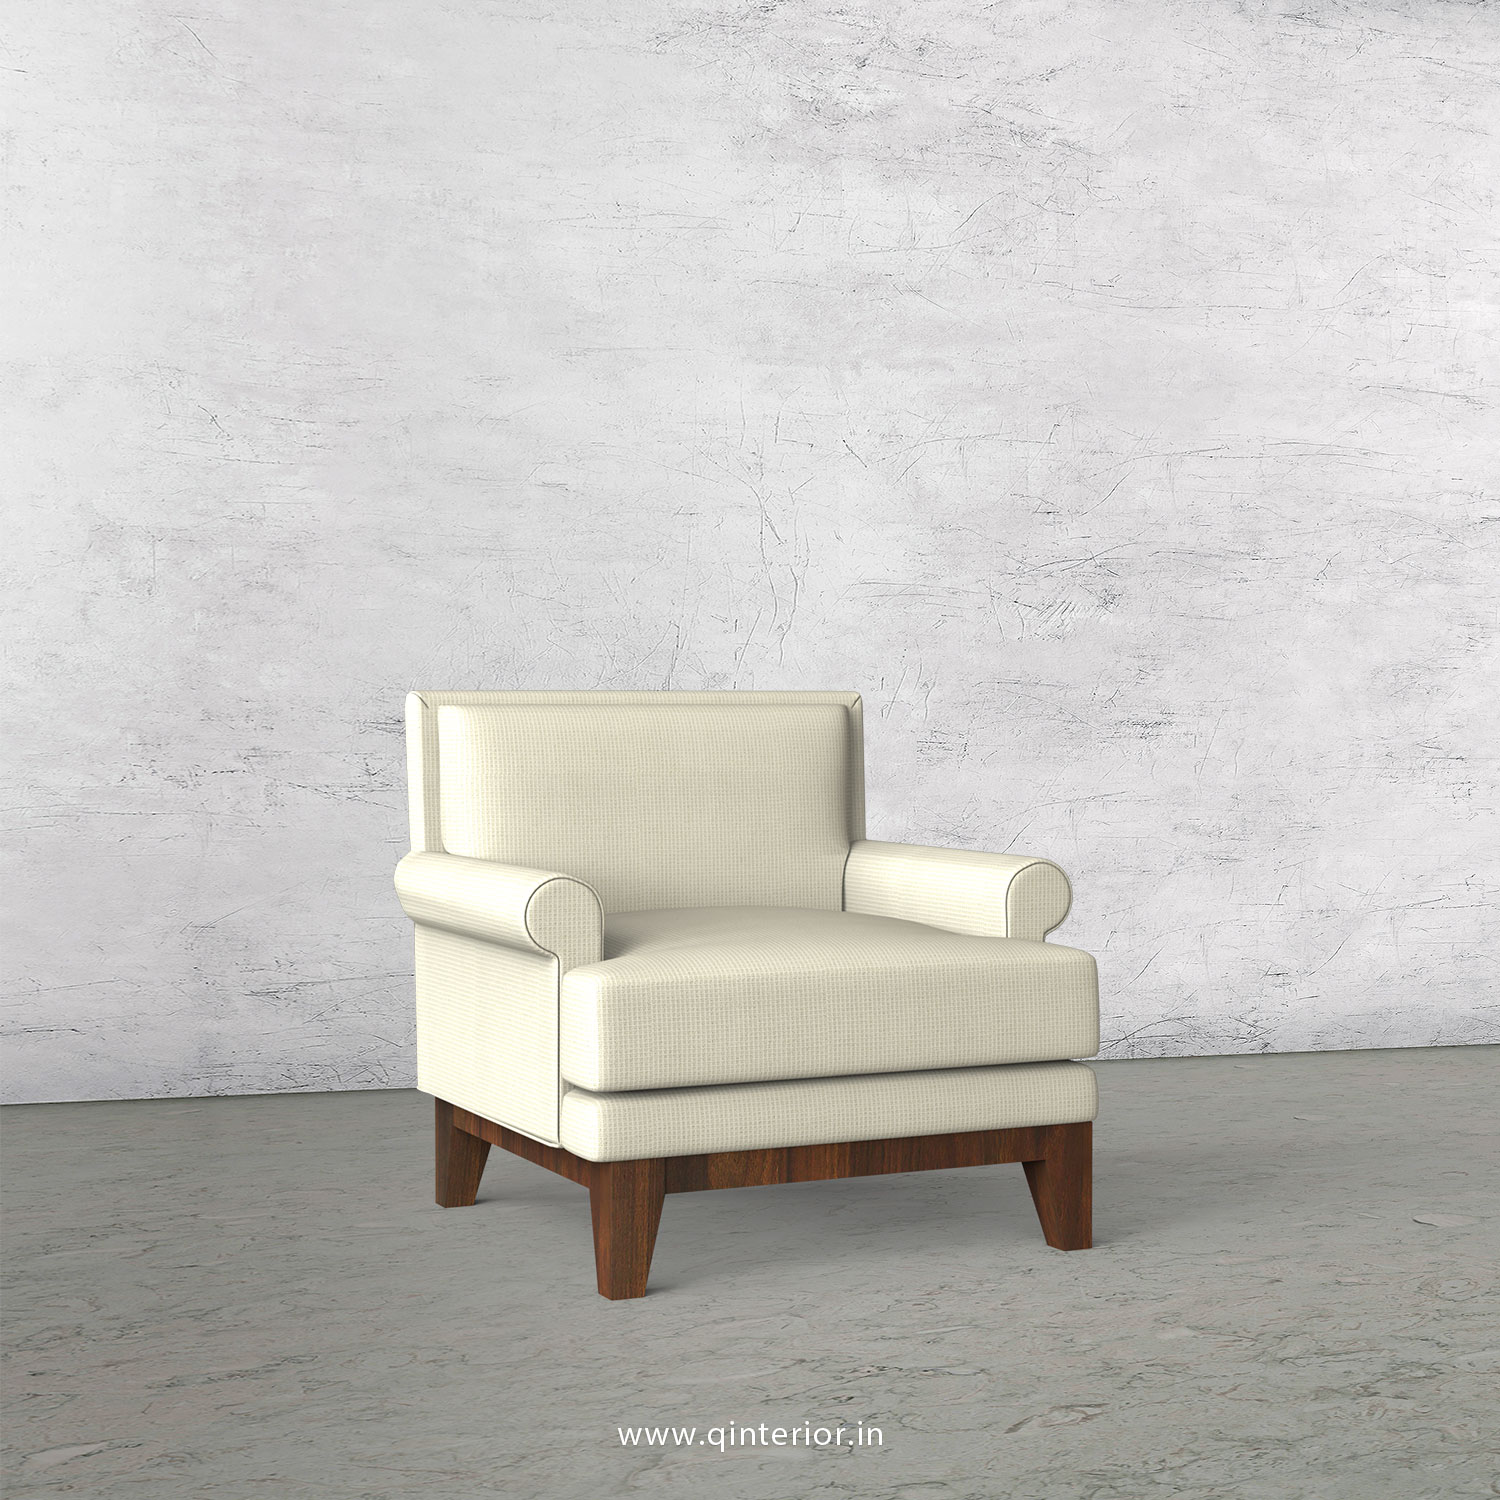 Aviana 1 Seater Sofa in Marvello - SFA001 MV07